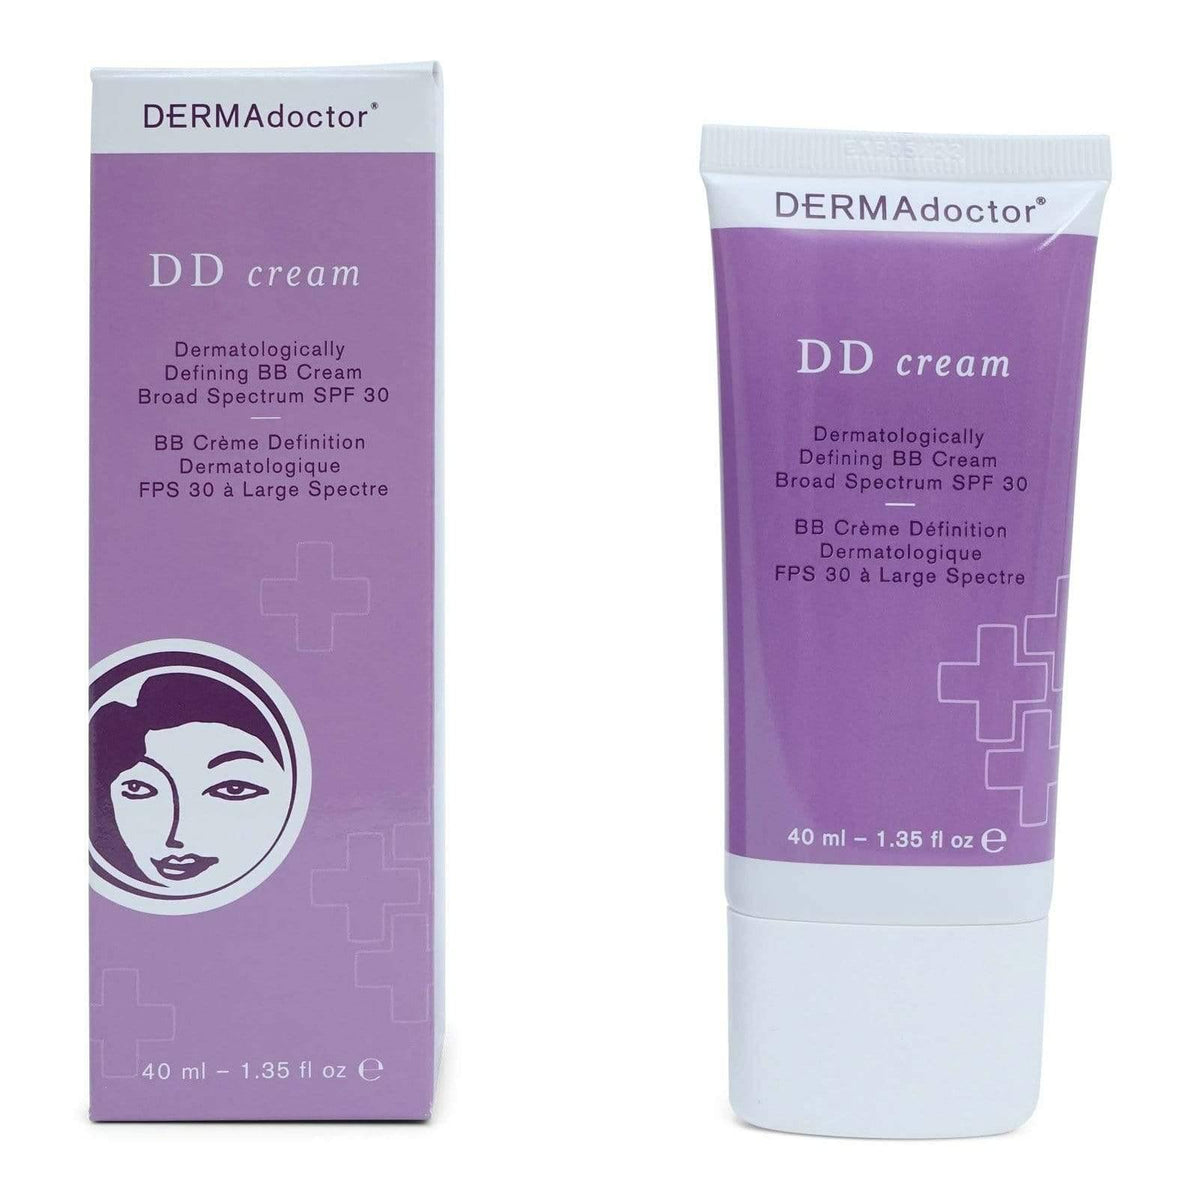 DermaDoctor DD Cream Dermatologically Defining BB Cream Broad Spectrum SPF 30 - Corrective antiaging beauty balm, helps support a healthy complexion.  Has mineral based SPF 30 protects skin from harmful UV rays. (12/cs)